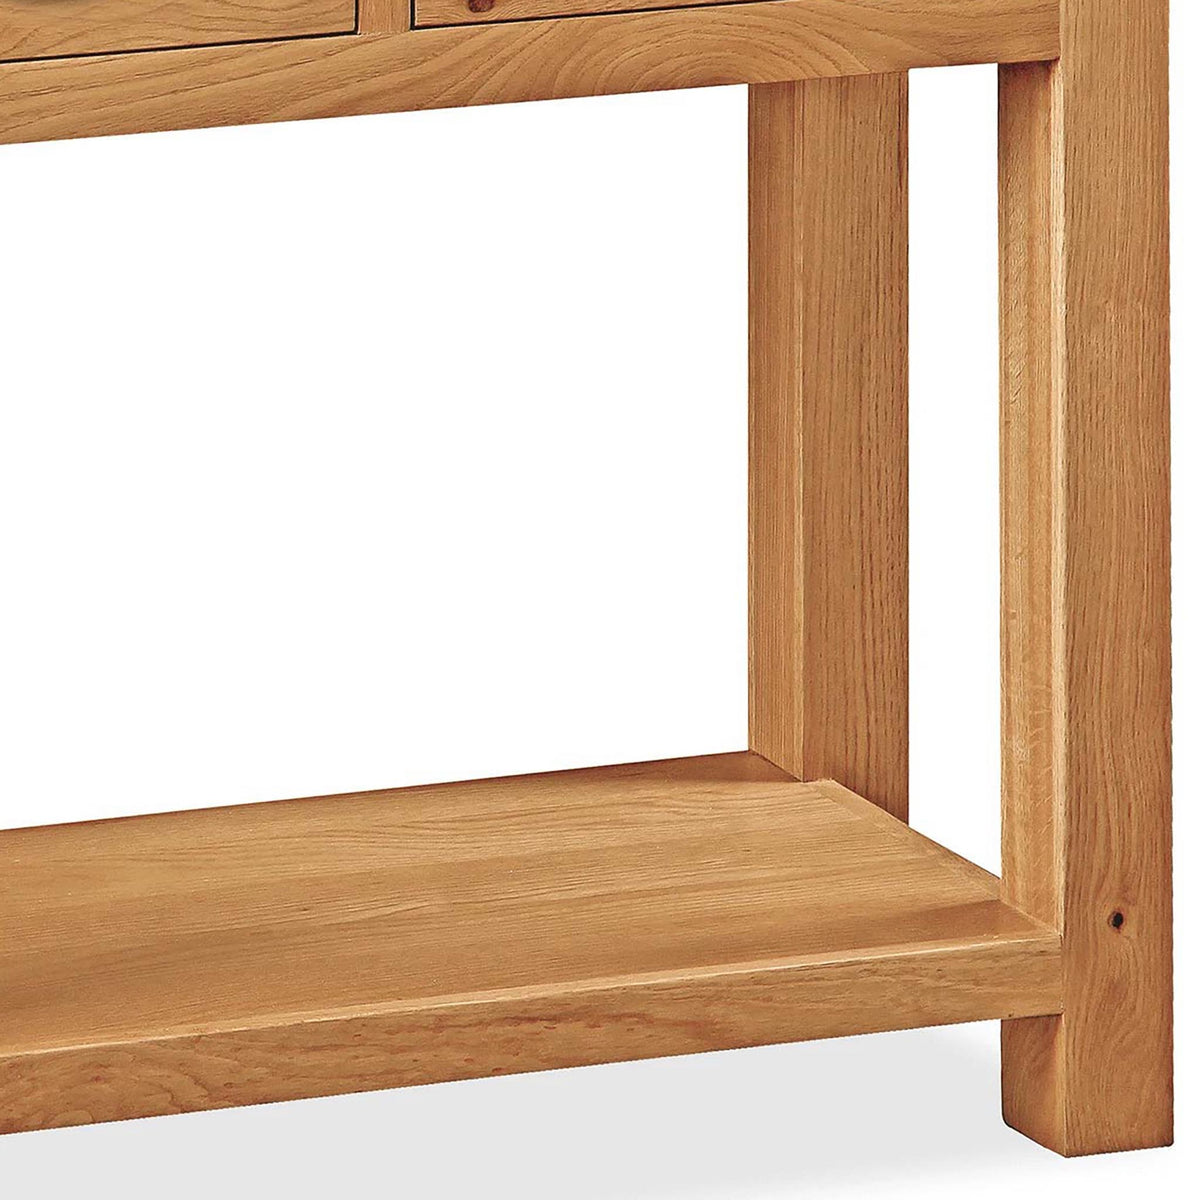 Sidmouth Oak Console Table - Close Up of Console Legs